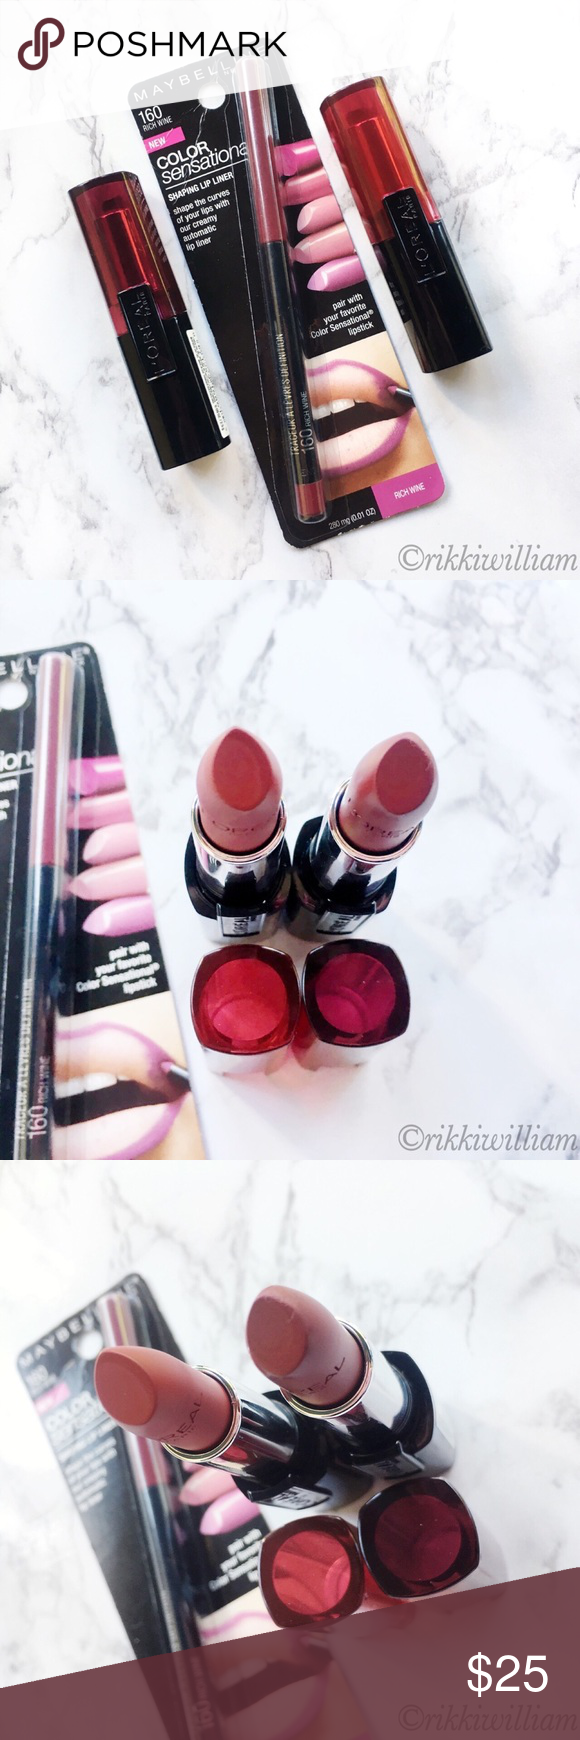 L'Oréal Lipstick X2 + Maybelline Lip Liner NWT (With